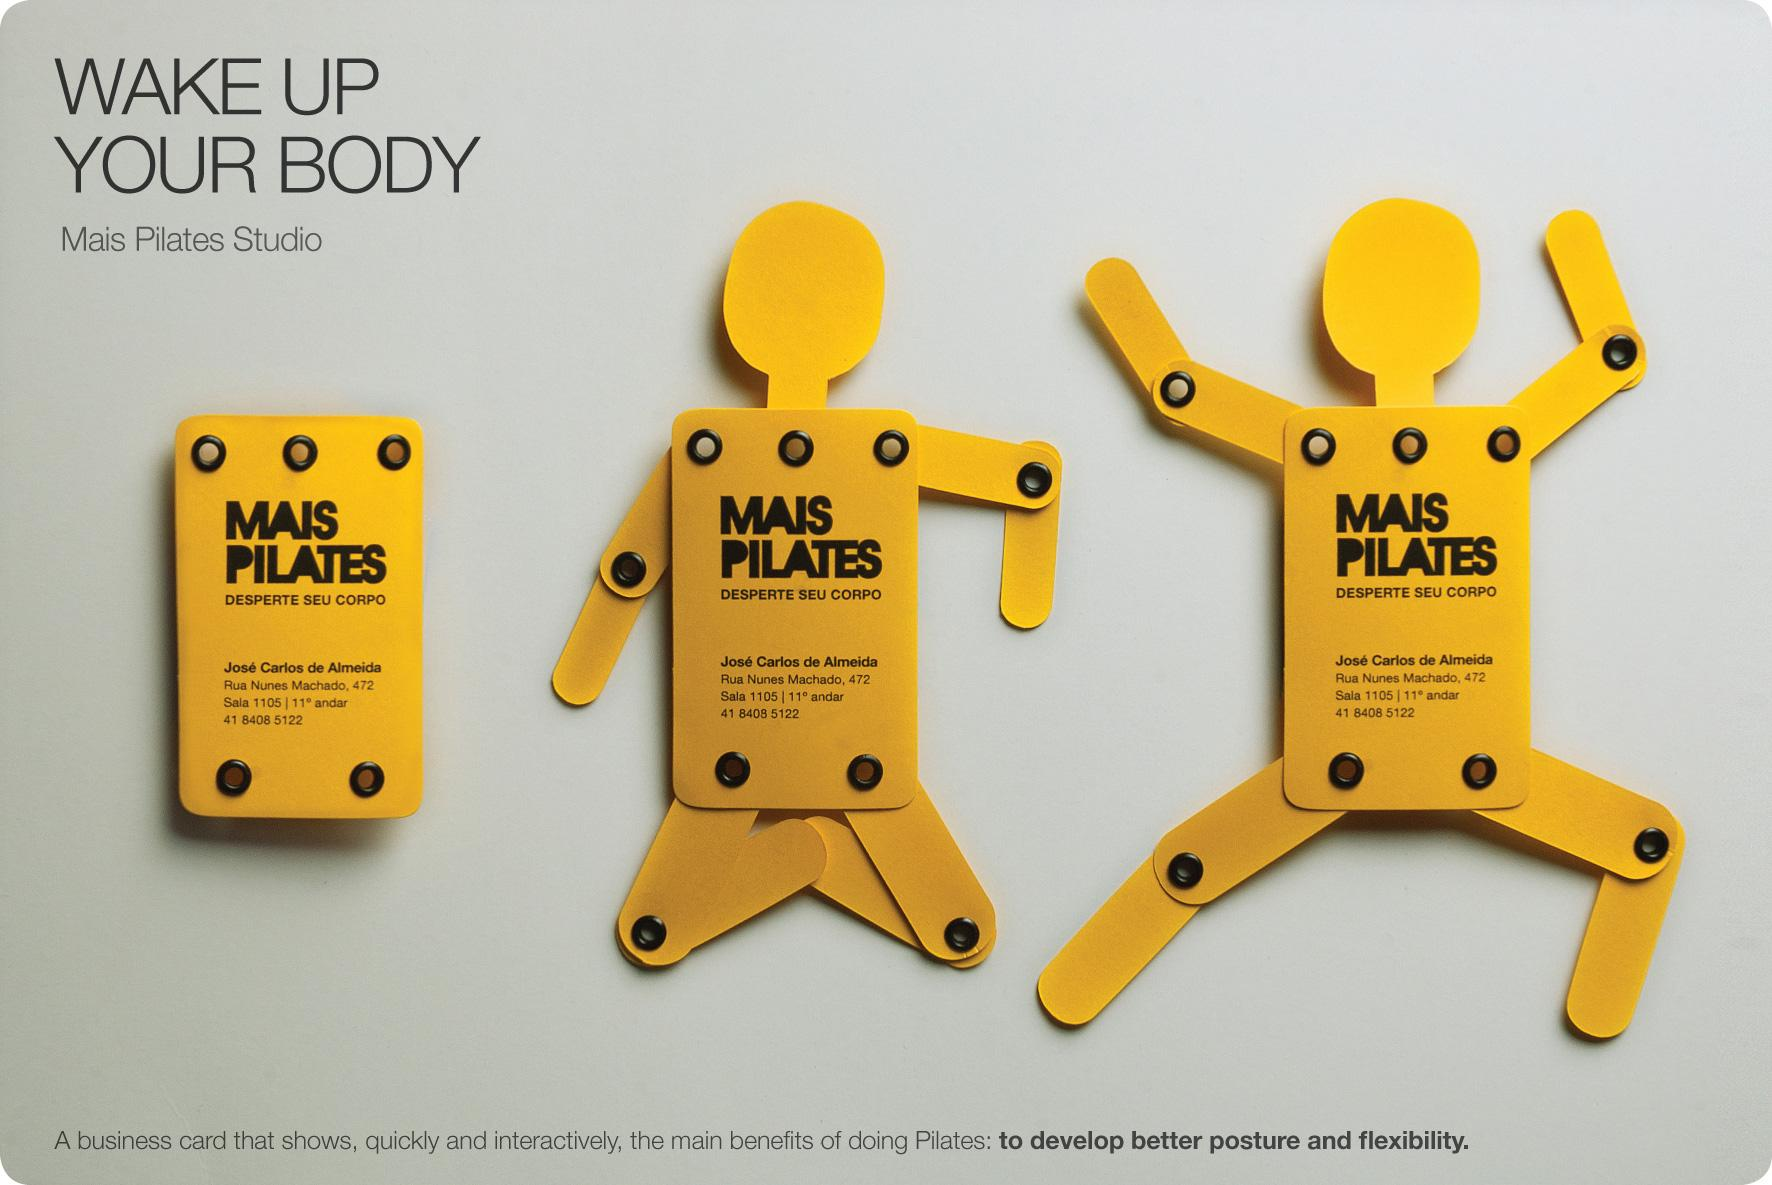 Mais Pilates Studio Direct Advert By MarketData: Wake Up Your Body ...